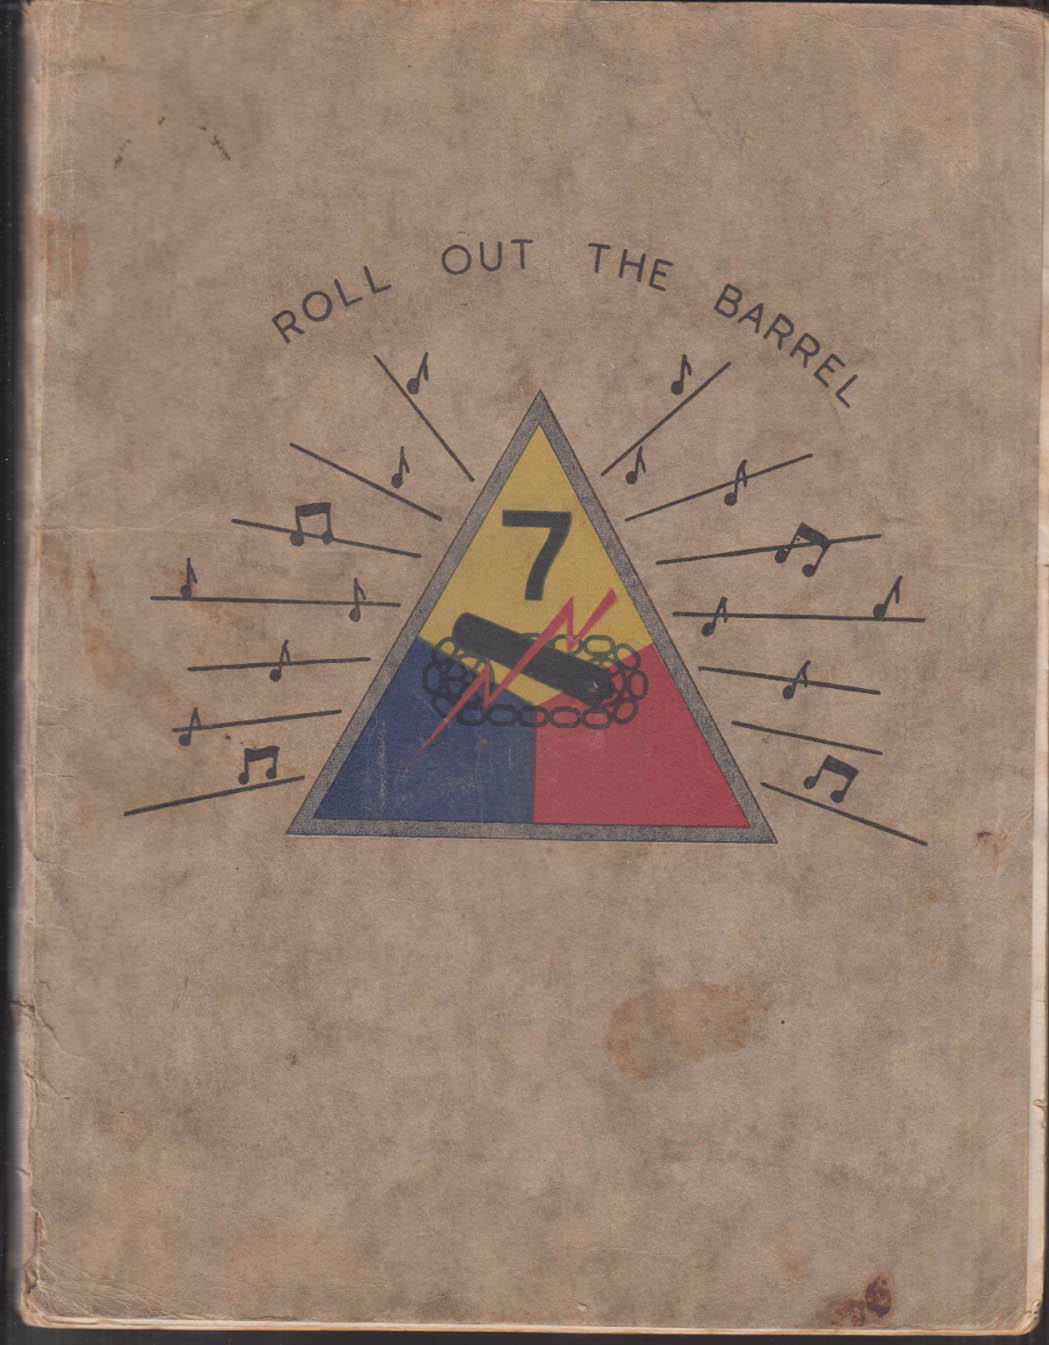 Image for Roll Out the Barrel US Army 7th Armored Division in France 1944 Gen Patton